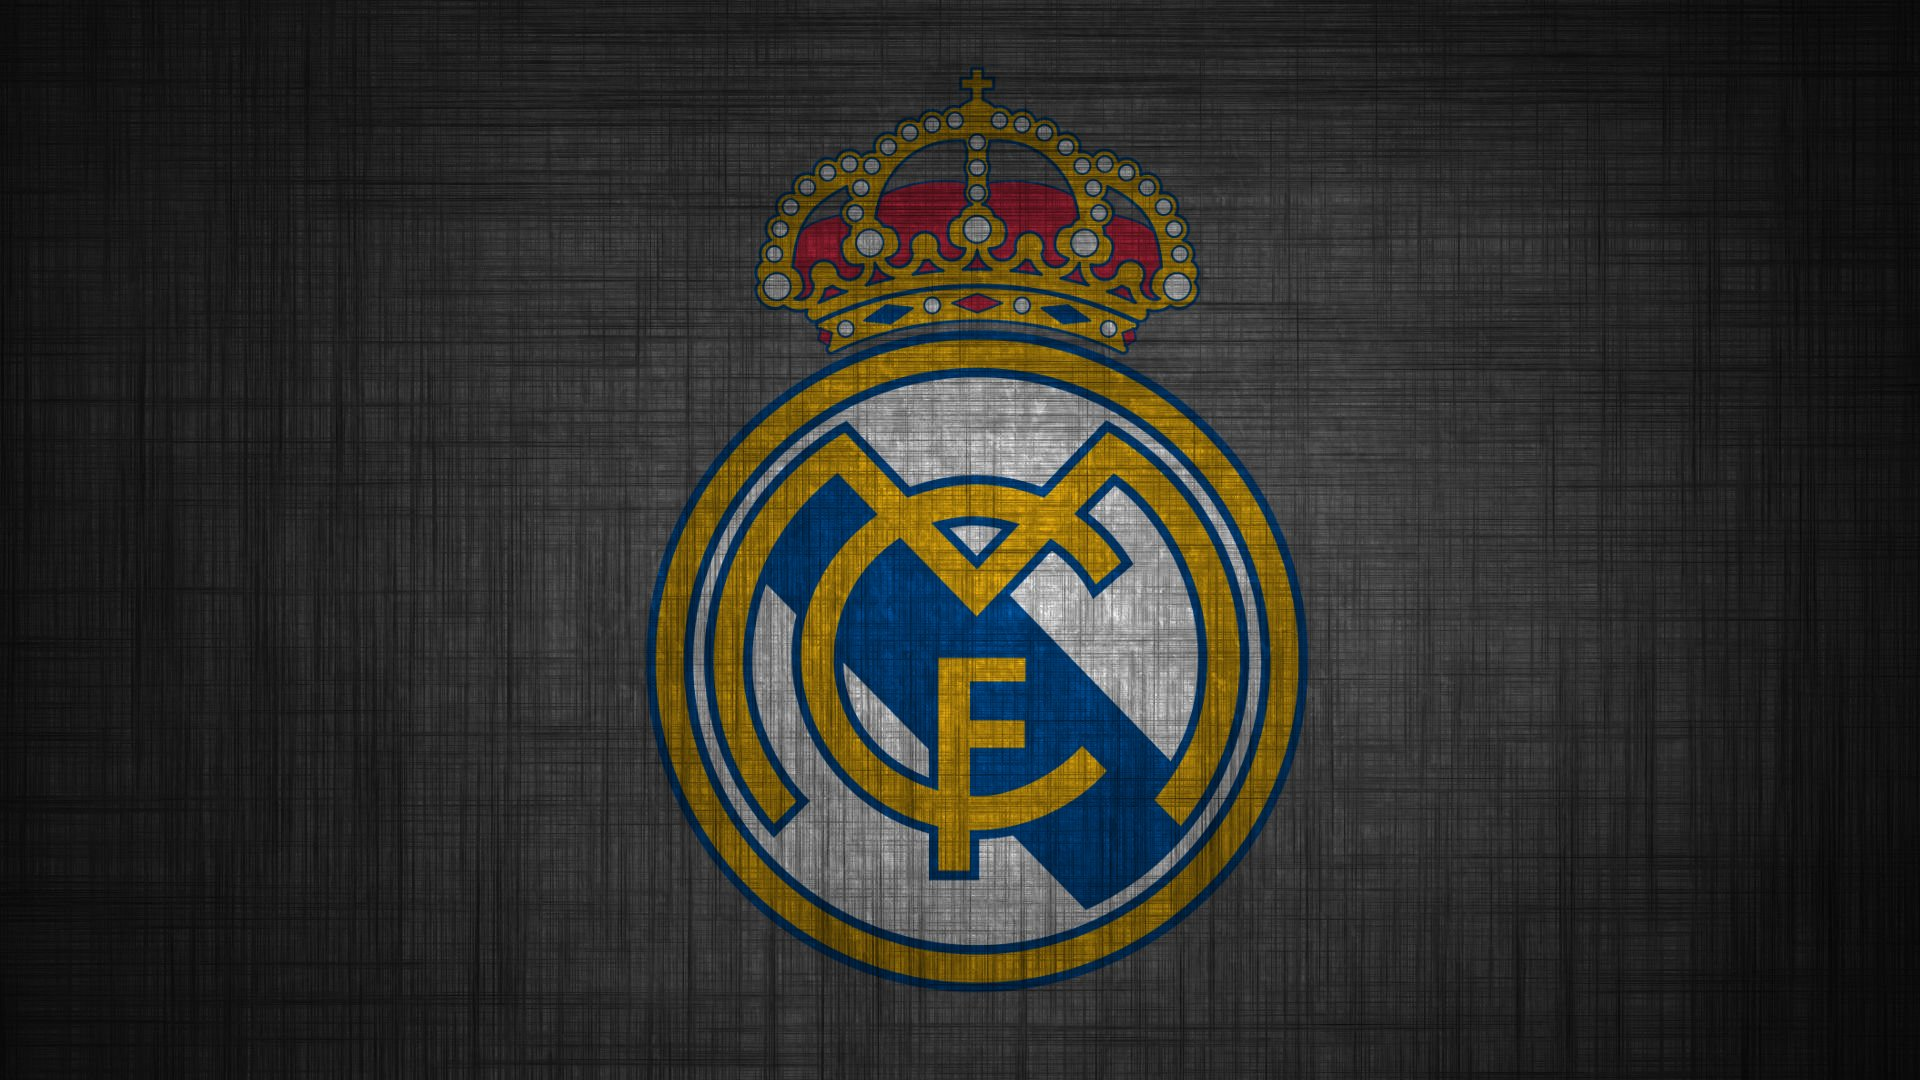 Full HD p Real madrid Wallpapers HD, Desktop Backgrounds 1920x1080